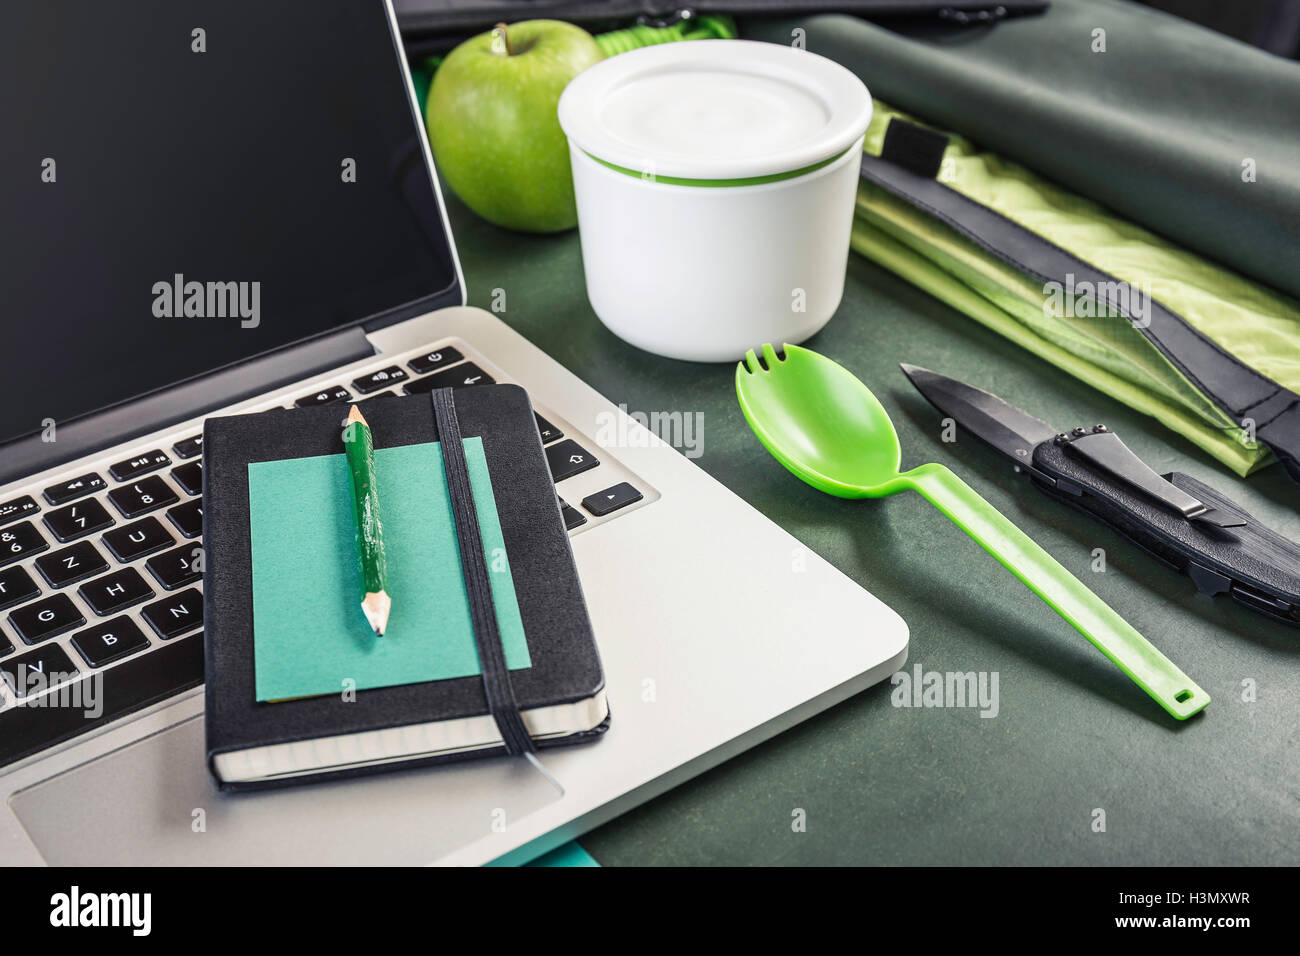 Laptop, notebook and pocket knife on table - Stock Image